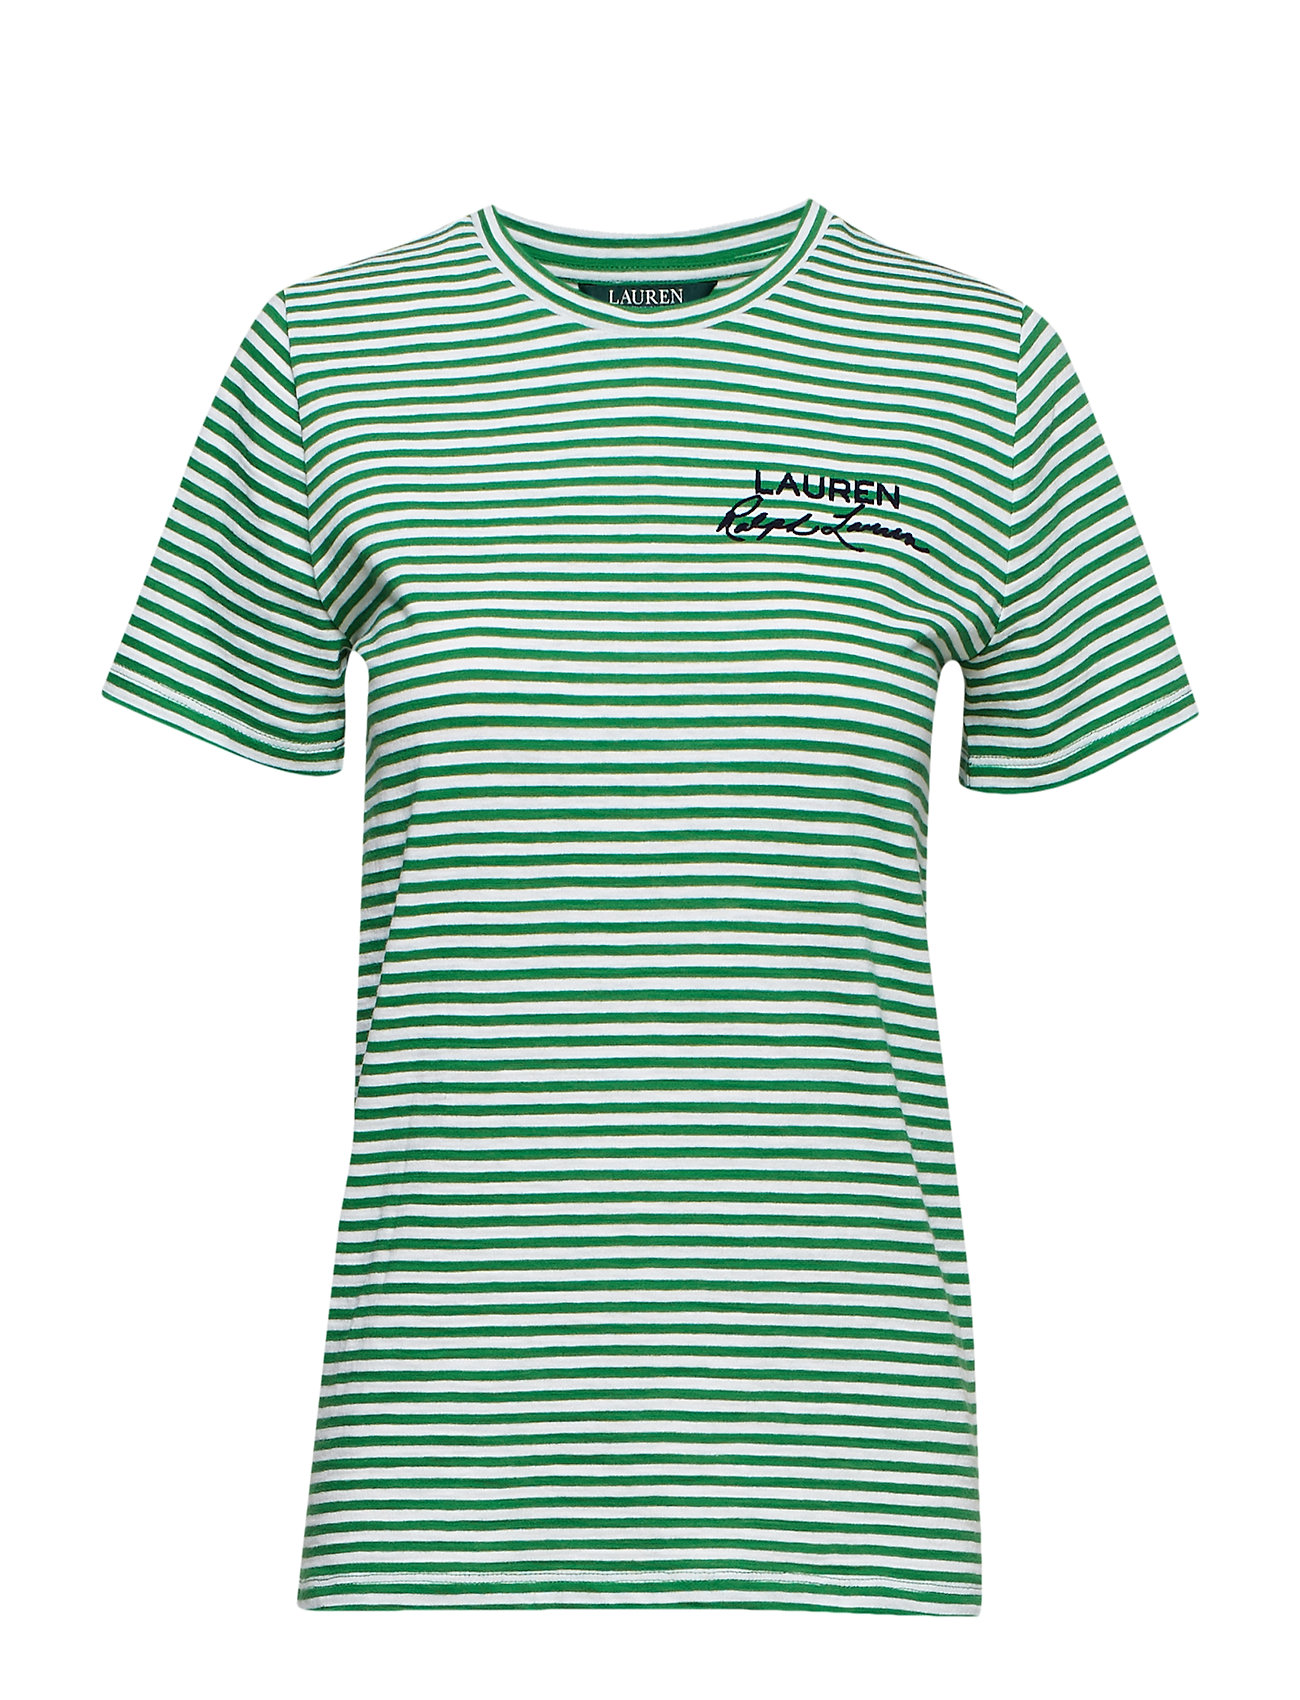 Lauren Ralph Lauren Logo Striped Cotton Tee